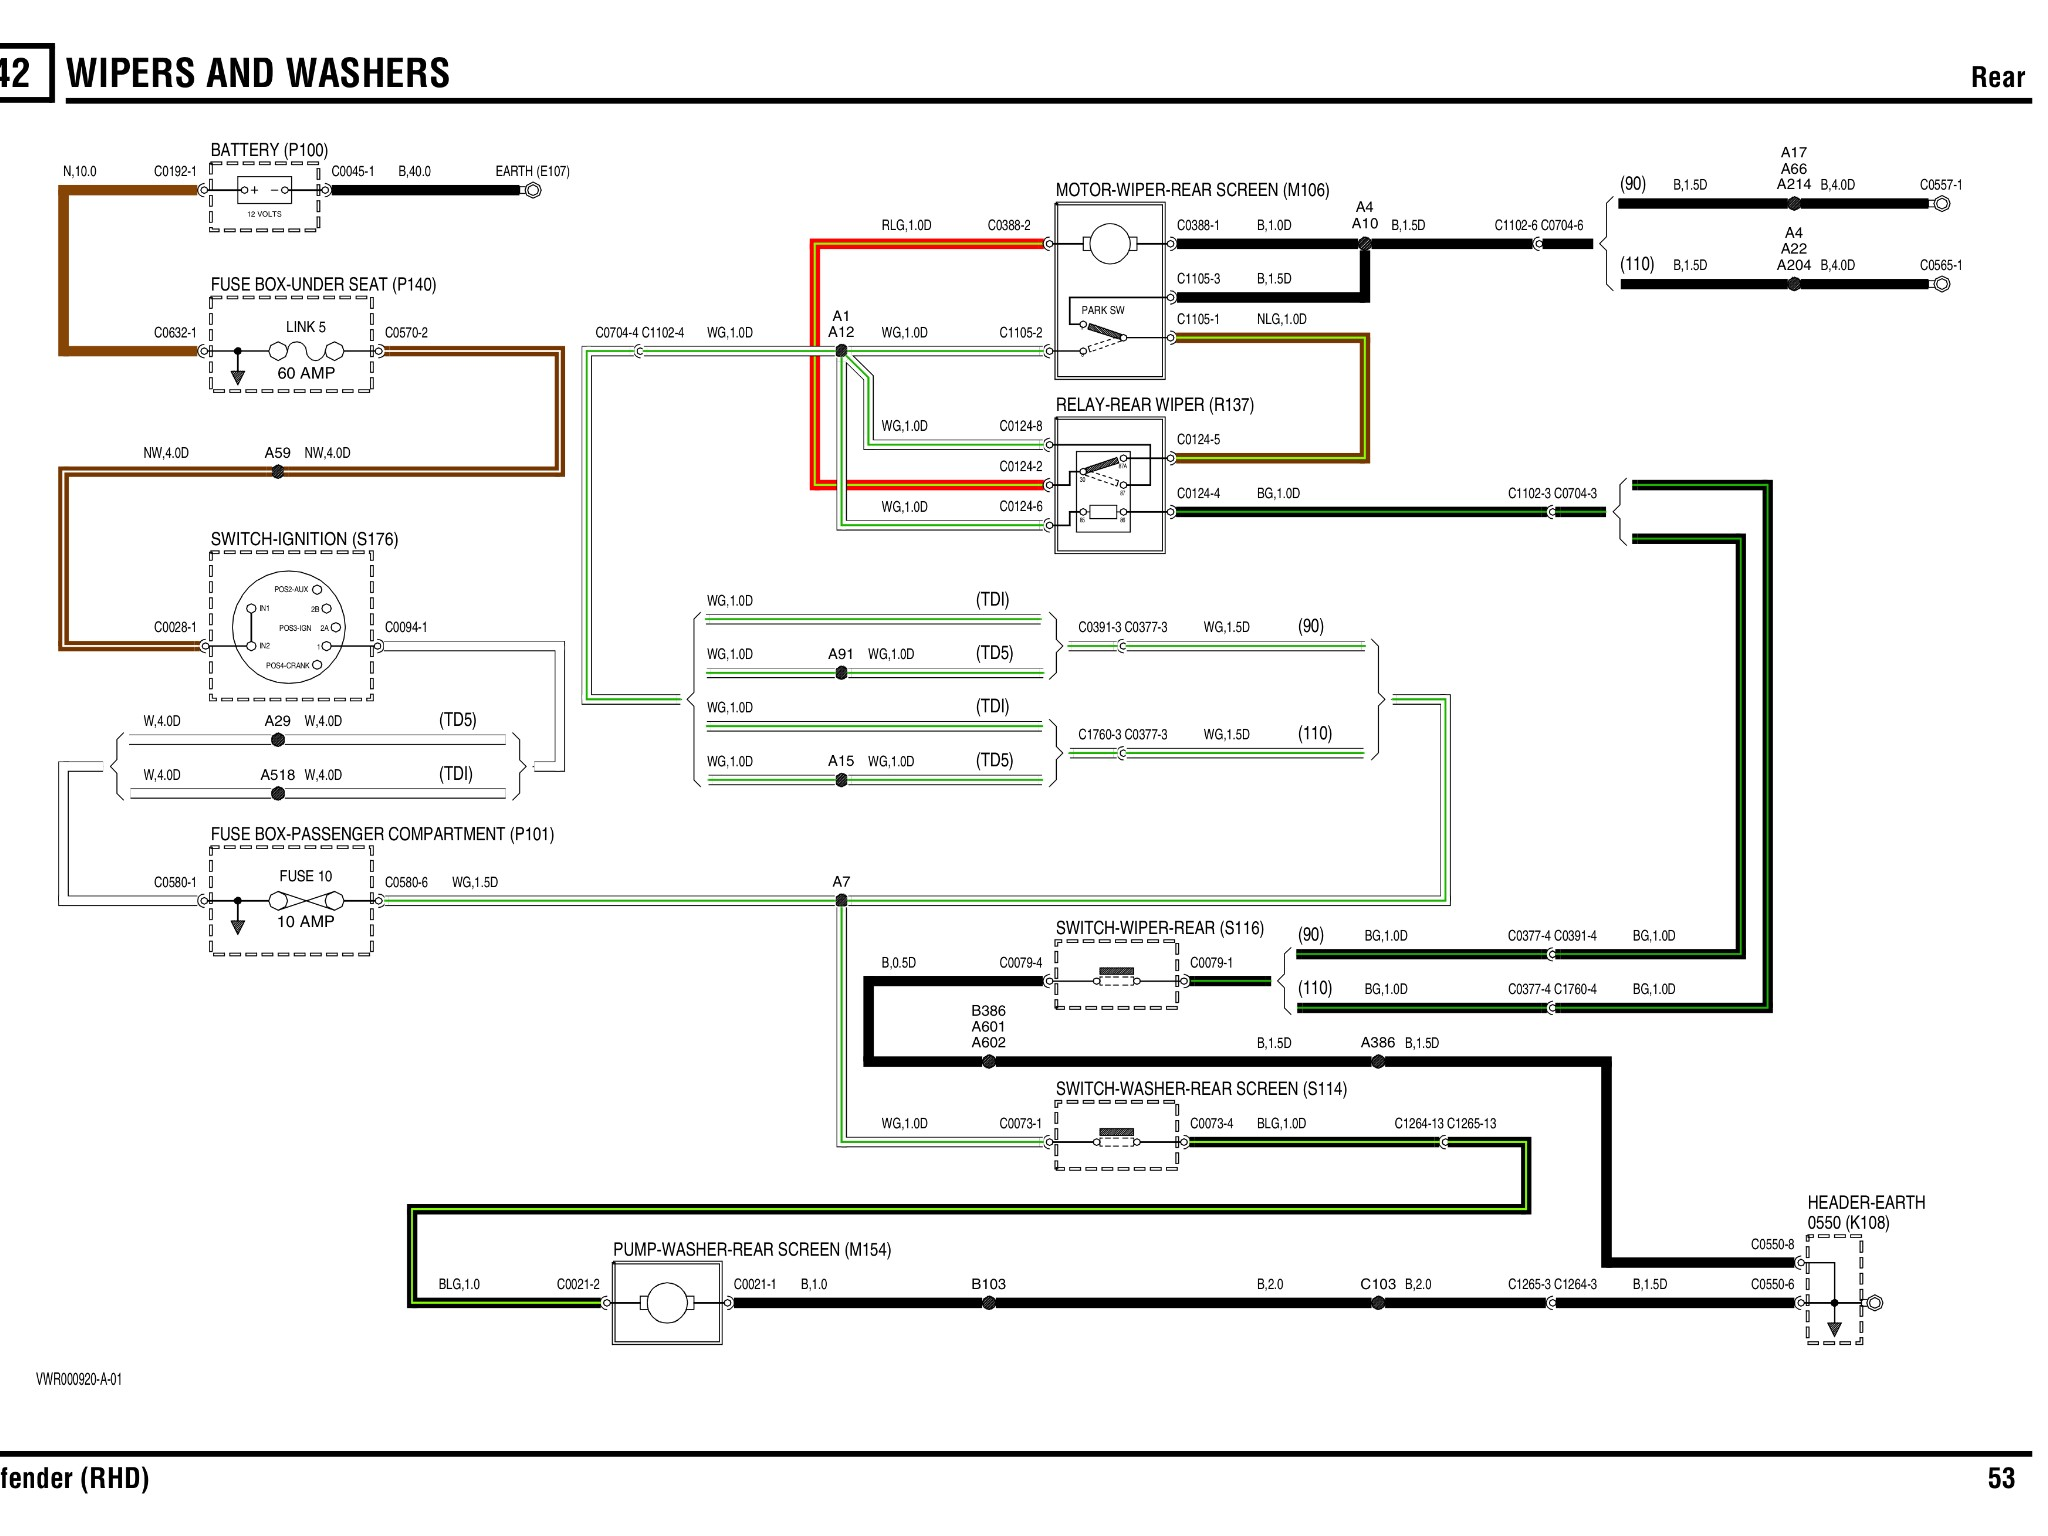 Wiper Motor Diagram Td5 Rear Wiper Wiring Help Please Defender forum Lr4x4 the Of Wiper Motor Diagram